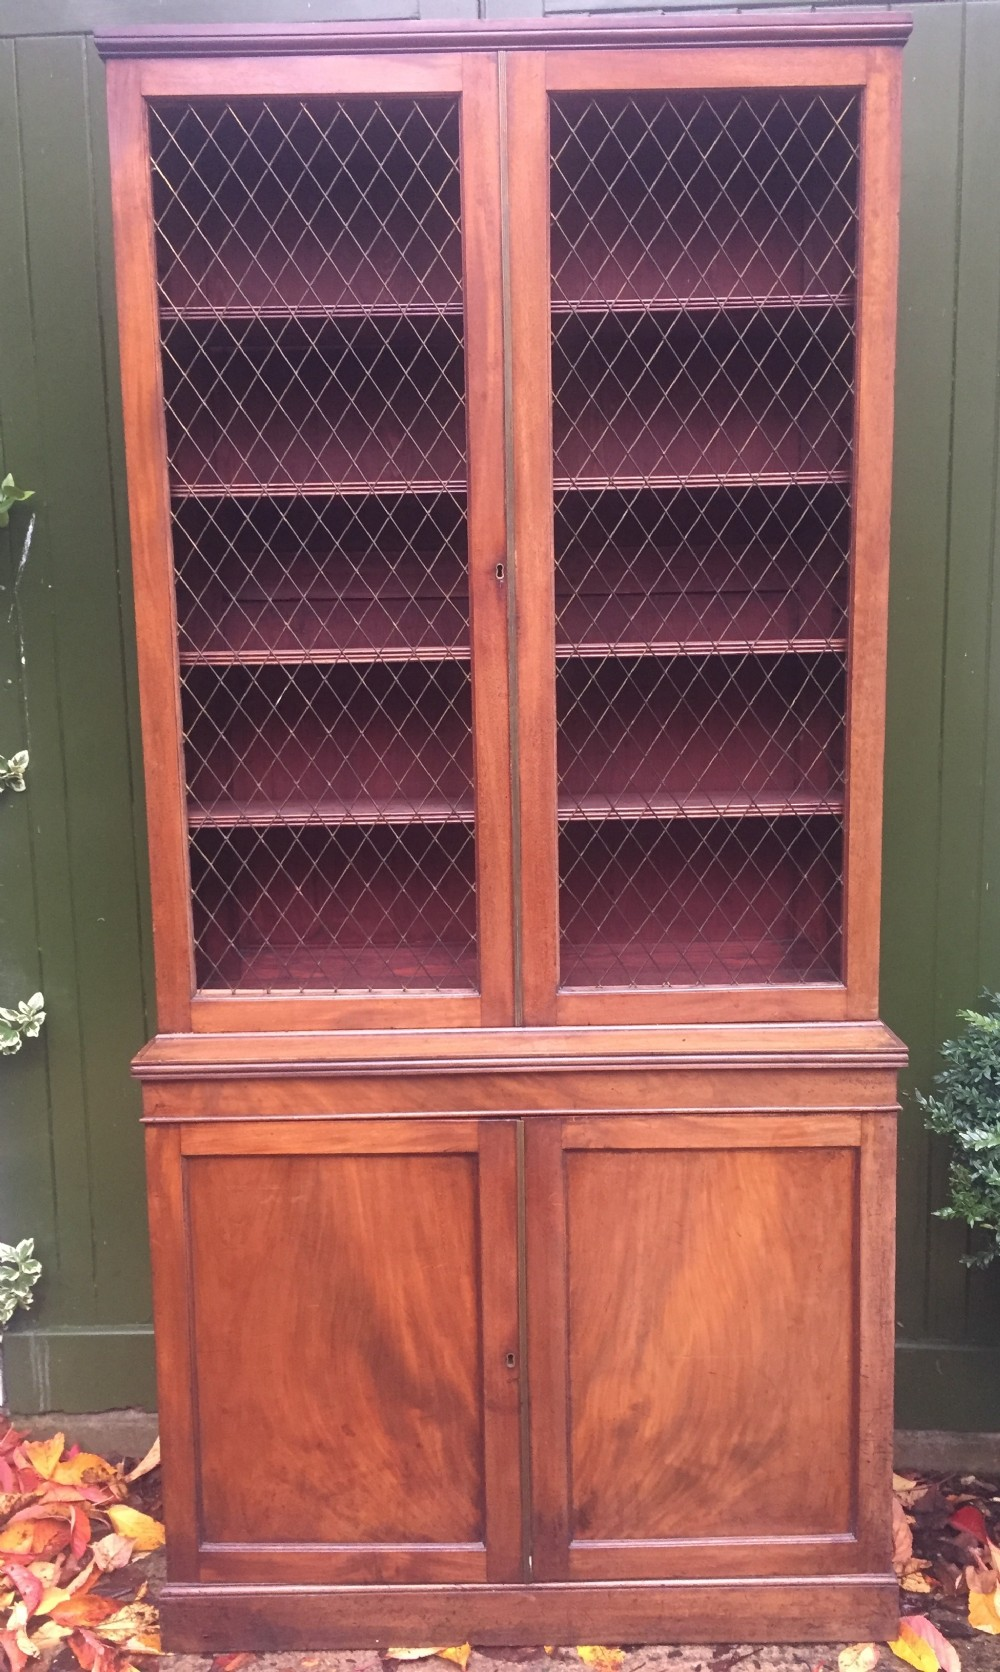 late c18th early c19th george iii period mahogany 2door bookcase with grille door top and cupboard base